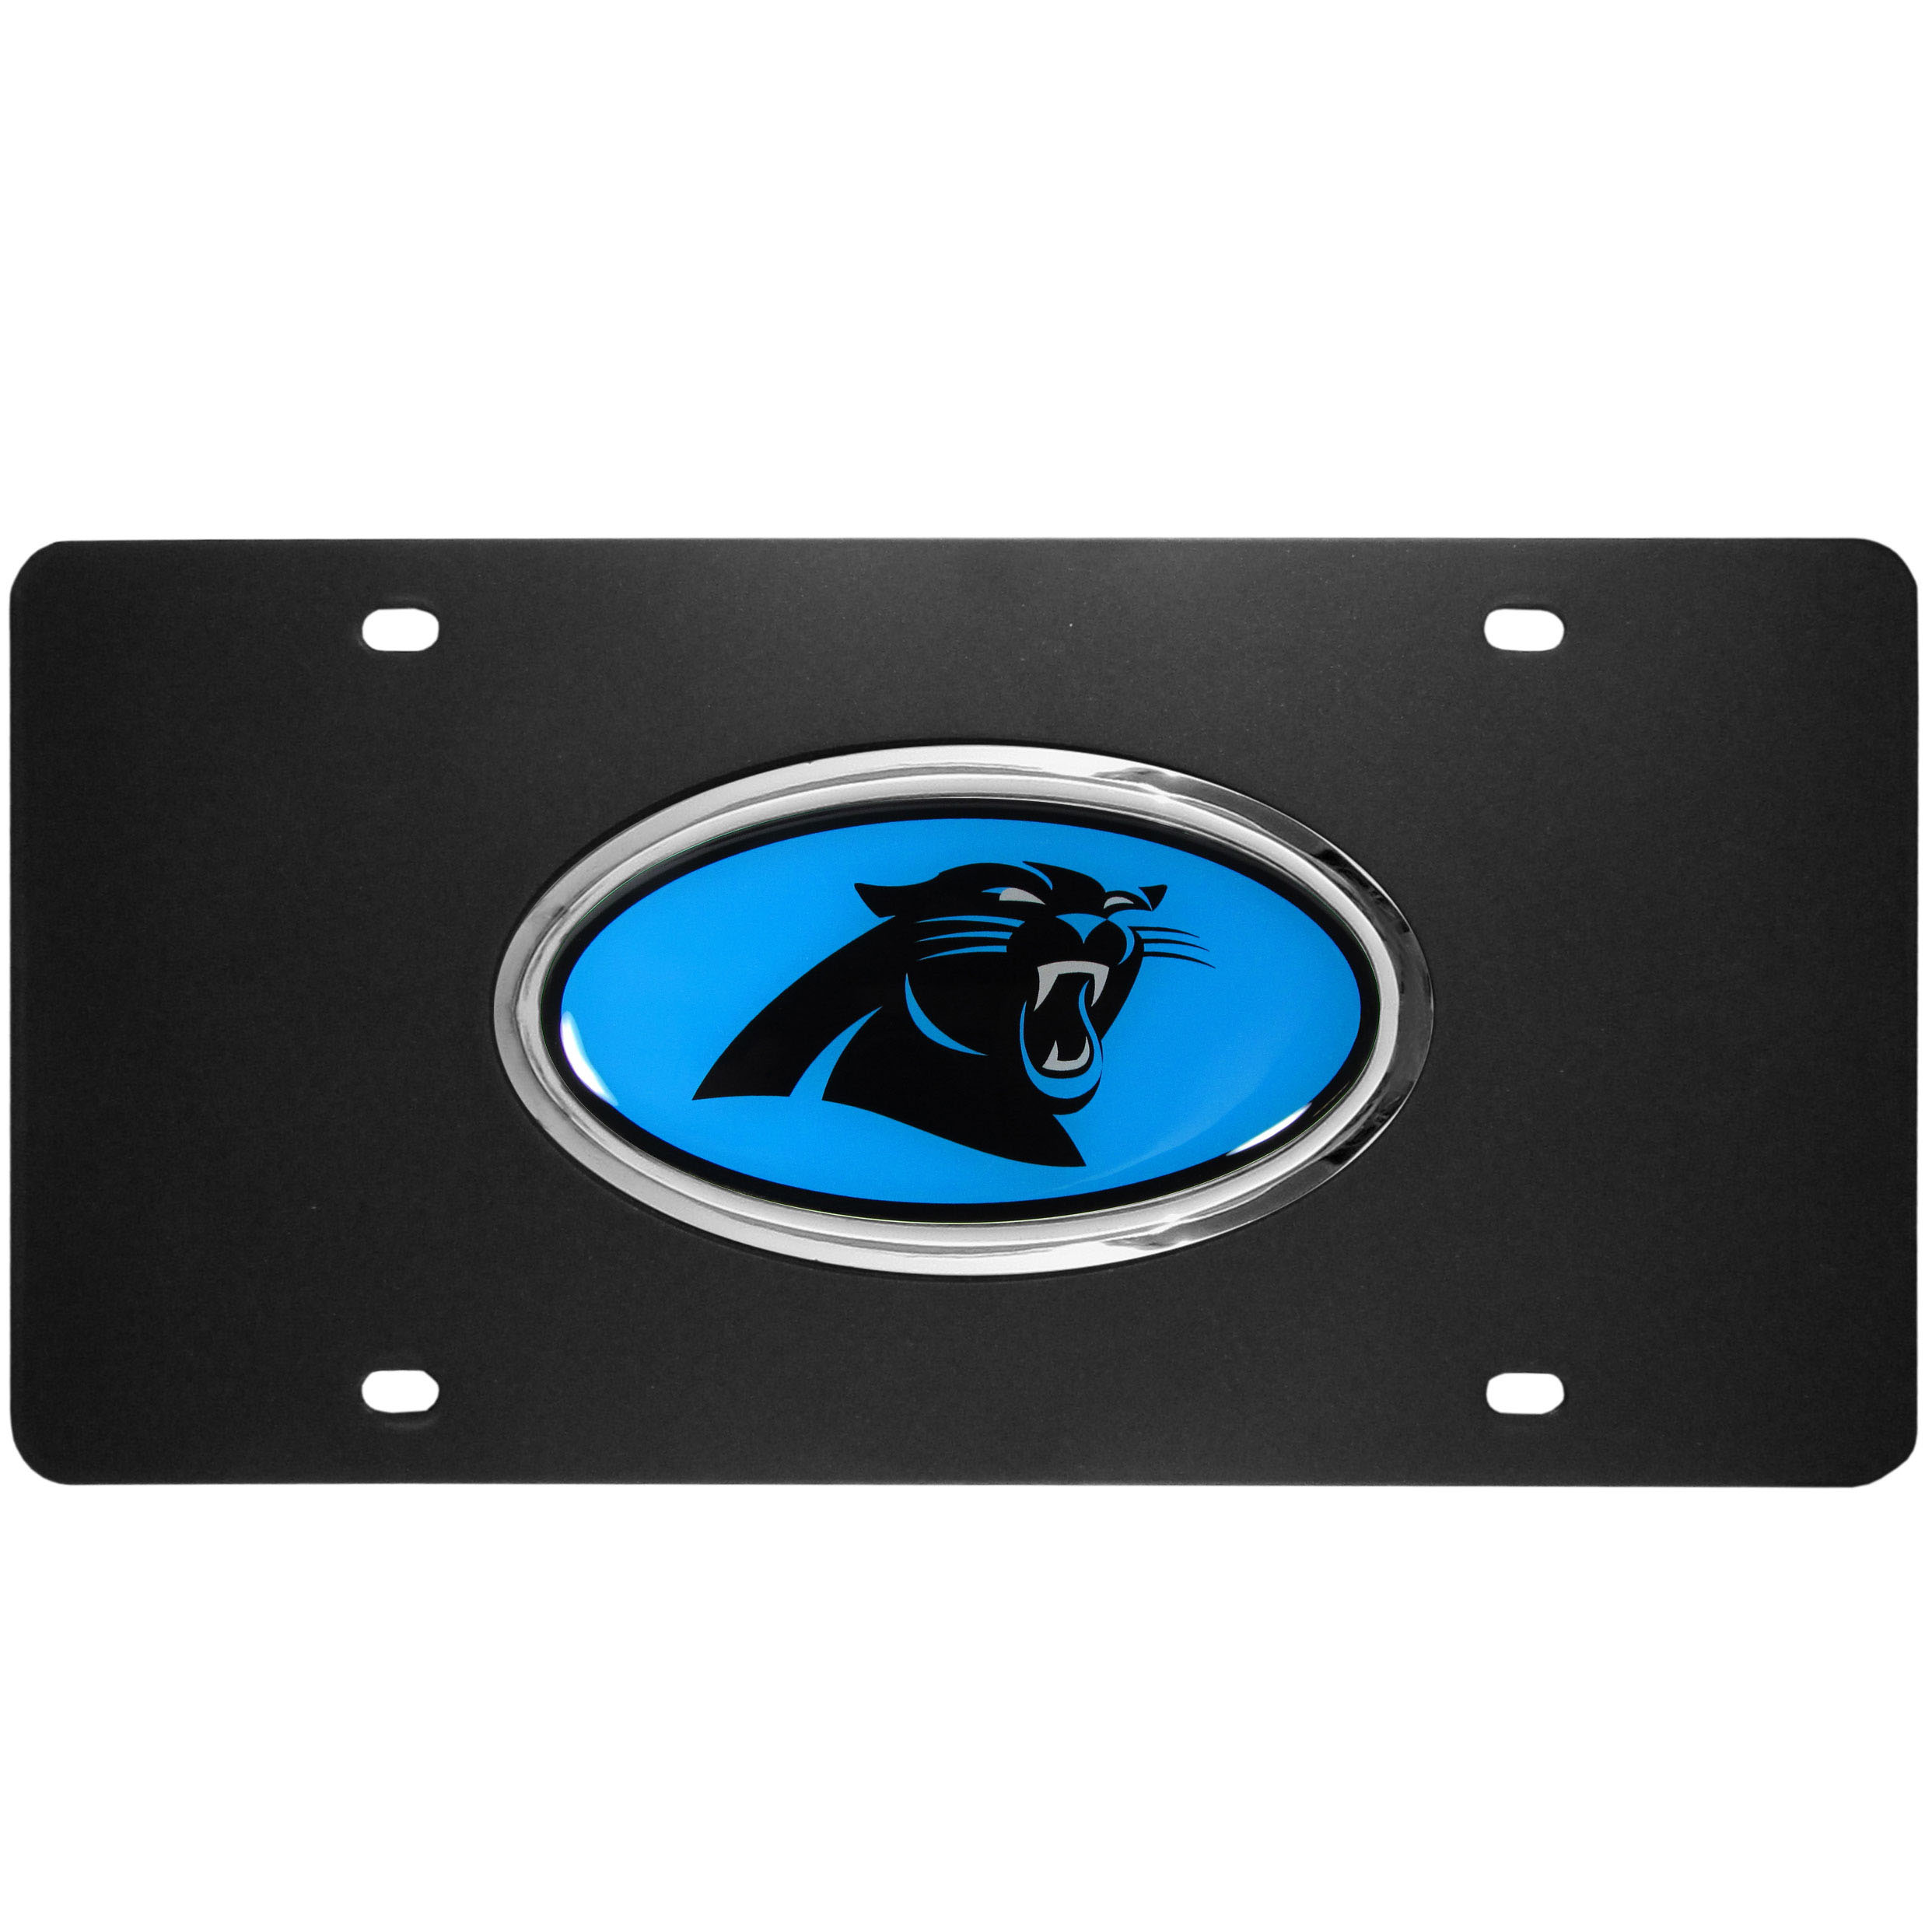 Carolina Panthers Acrylic License Plate - Our Carolina Panthers acrylic license plate is a step above the rest. It is made of thick, durable acrylic with a matte black finish and raised chrome saddle for the extra large team emblem.